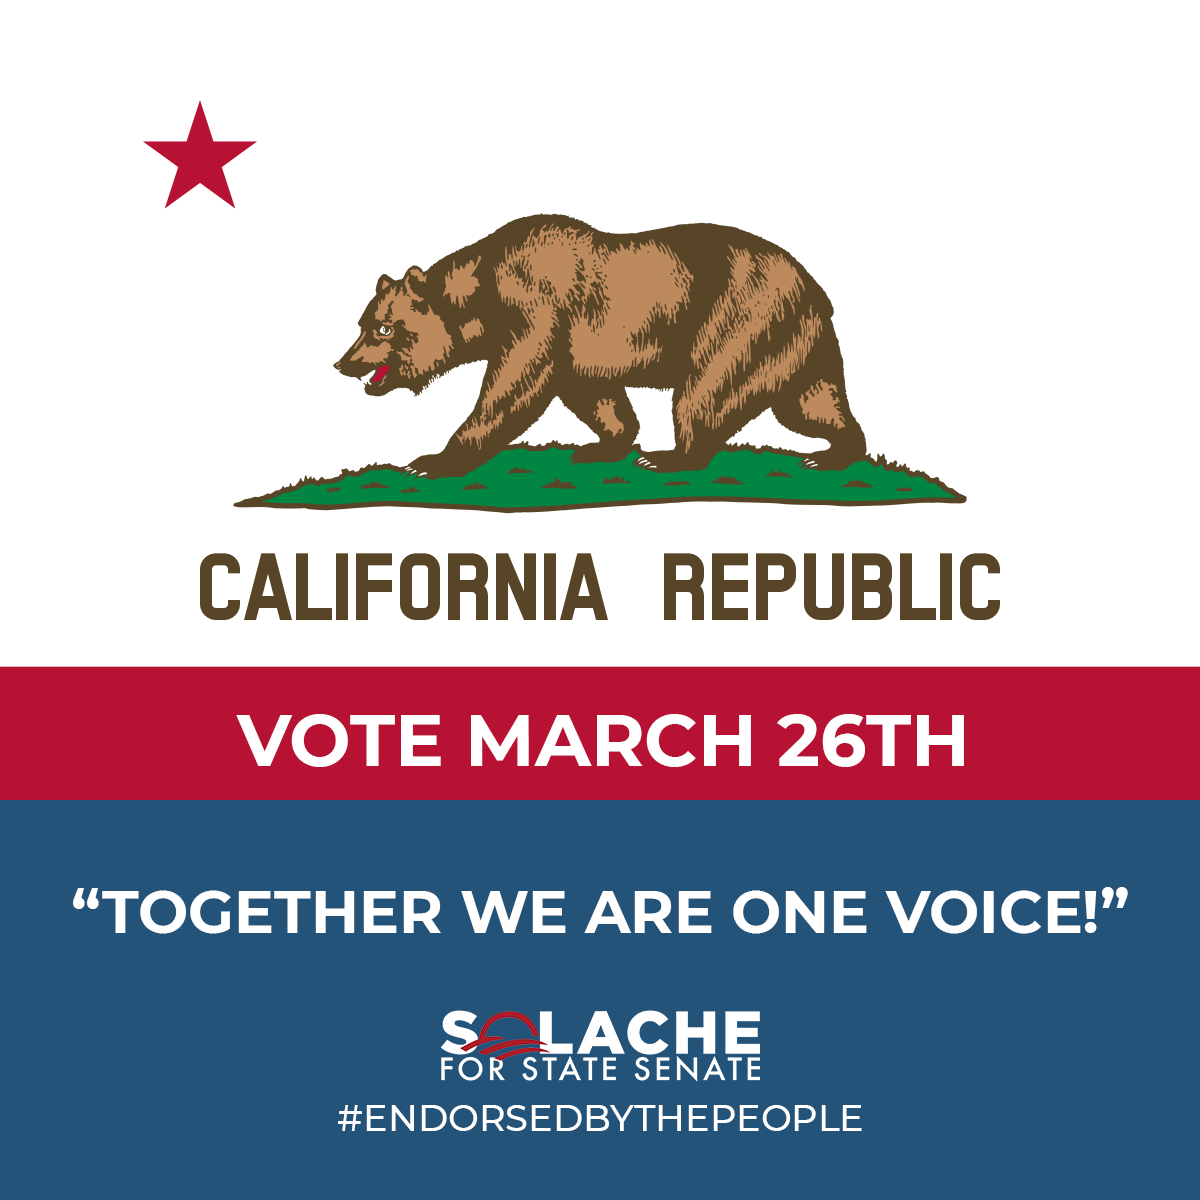 CaliforniaRepublic-Together We Are One Voice.png